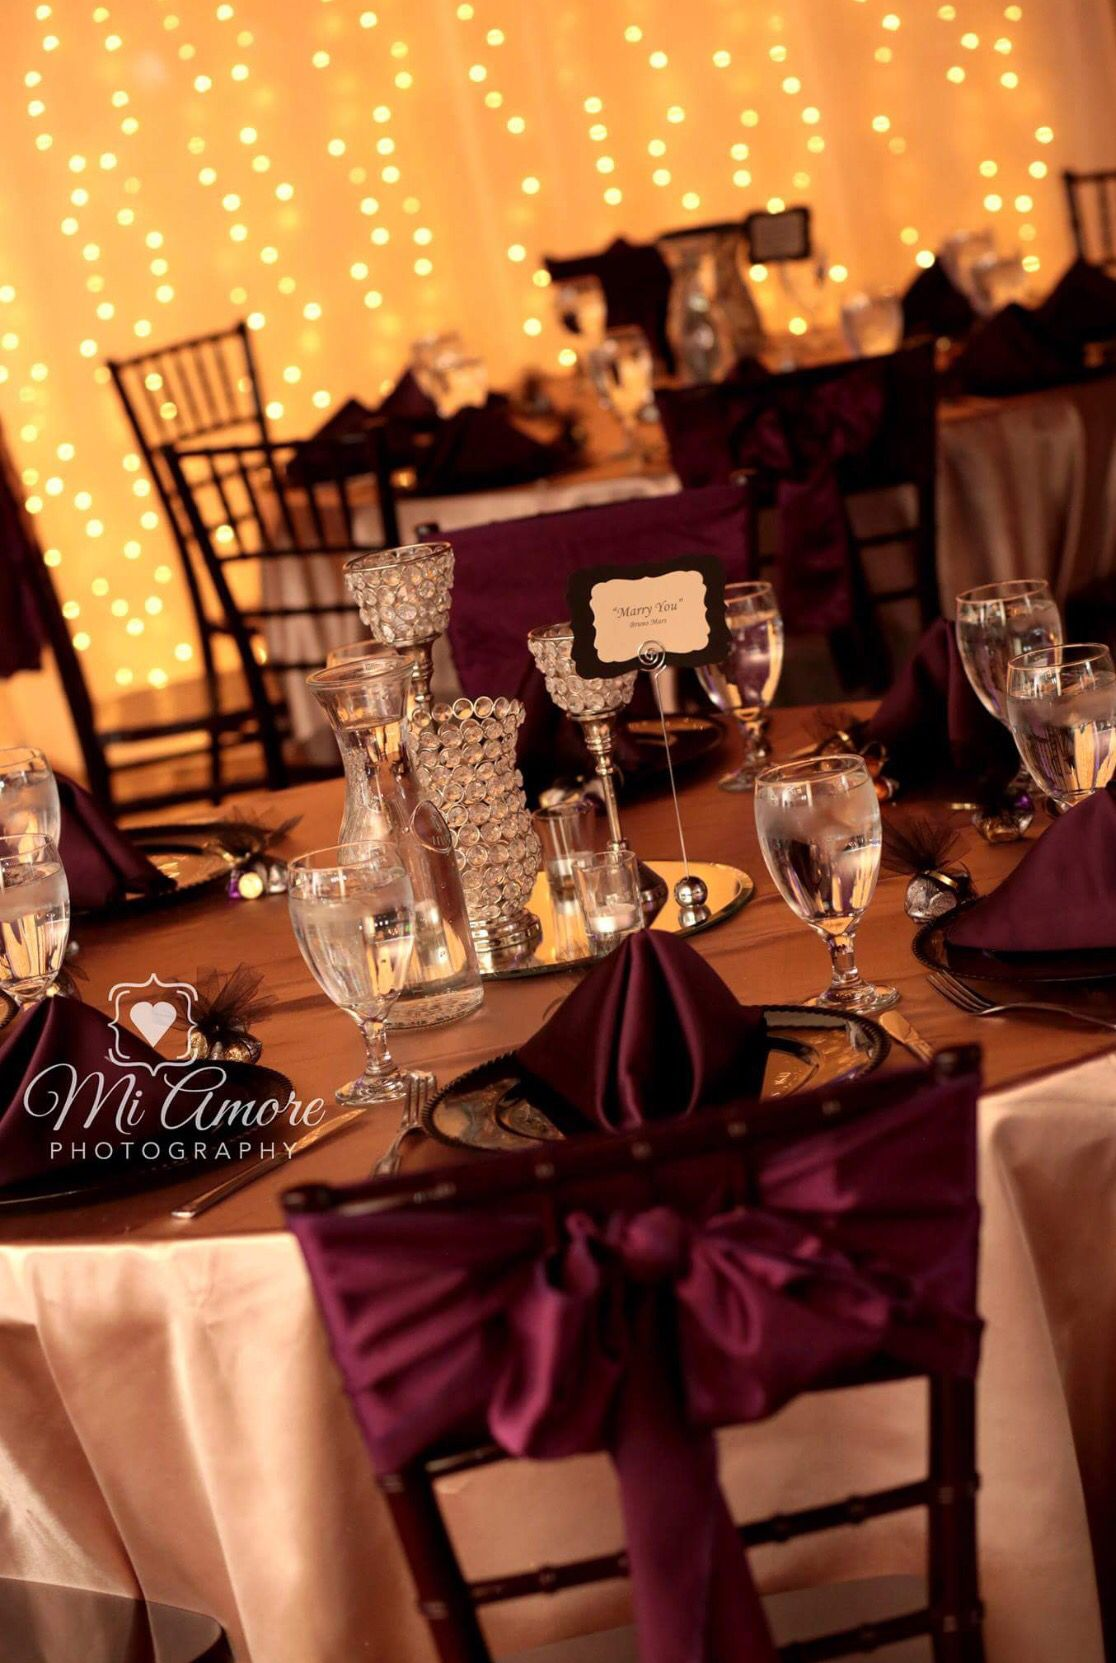 Burgundy Sashes With Bling Centerpieces On Gold Linen